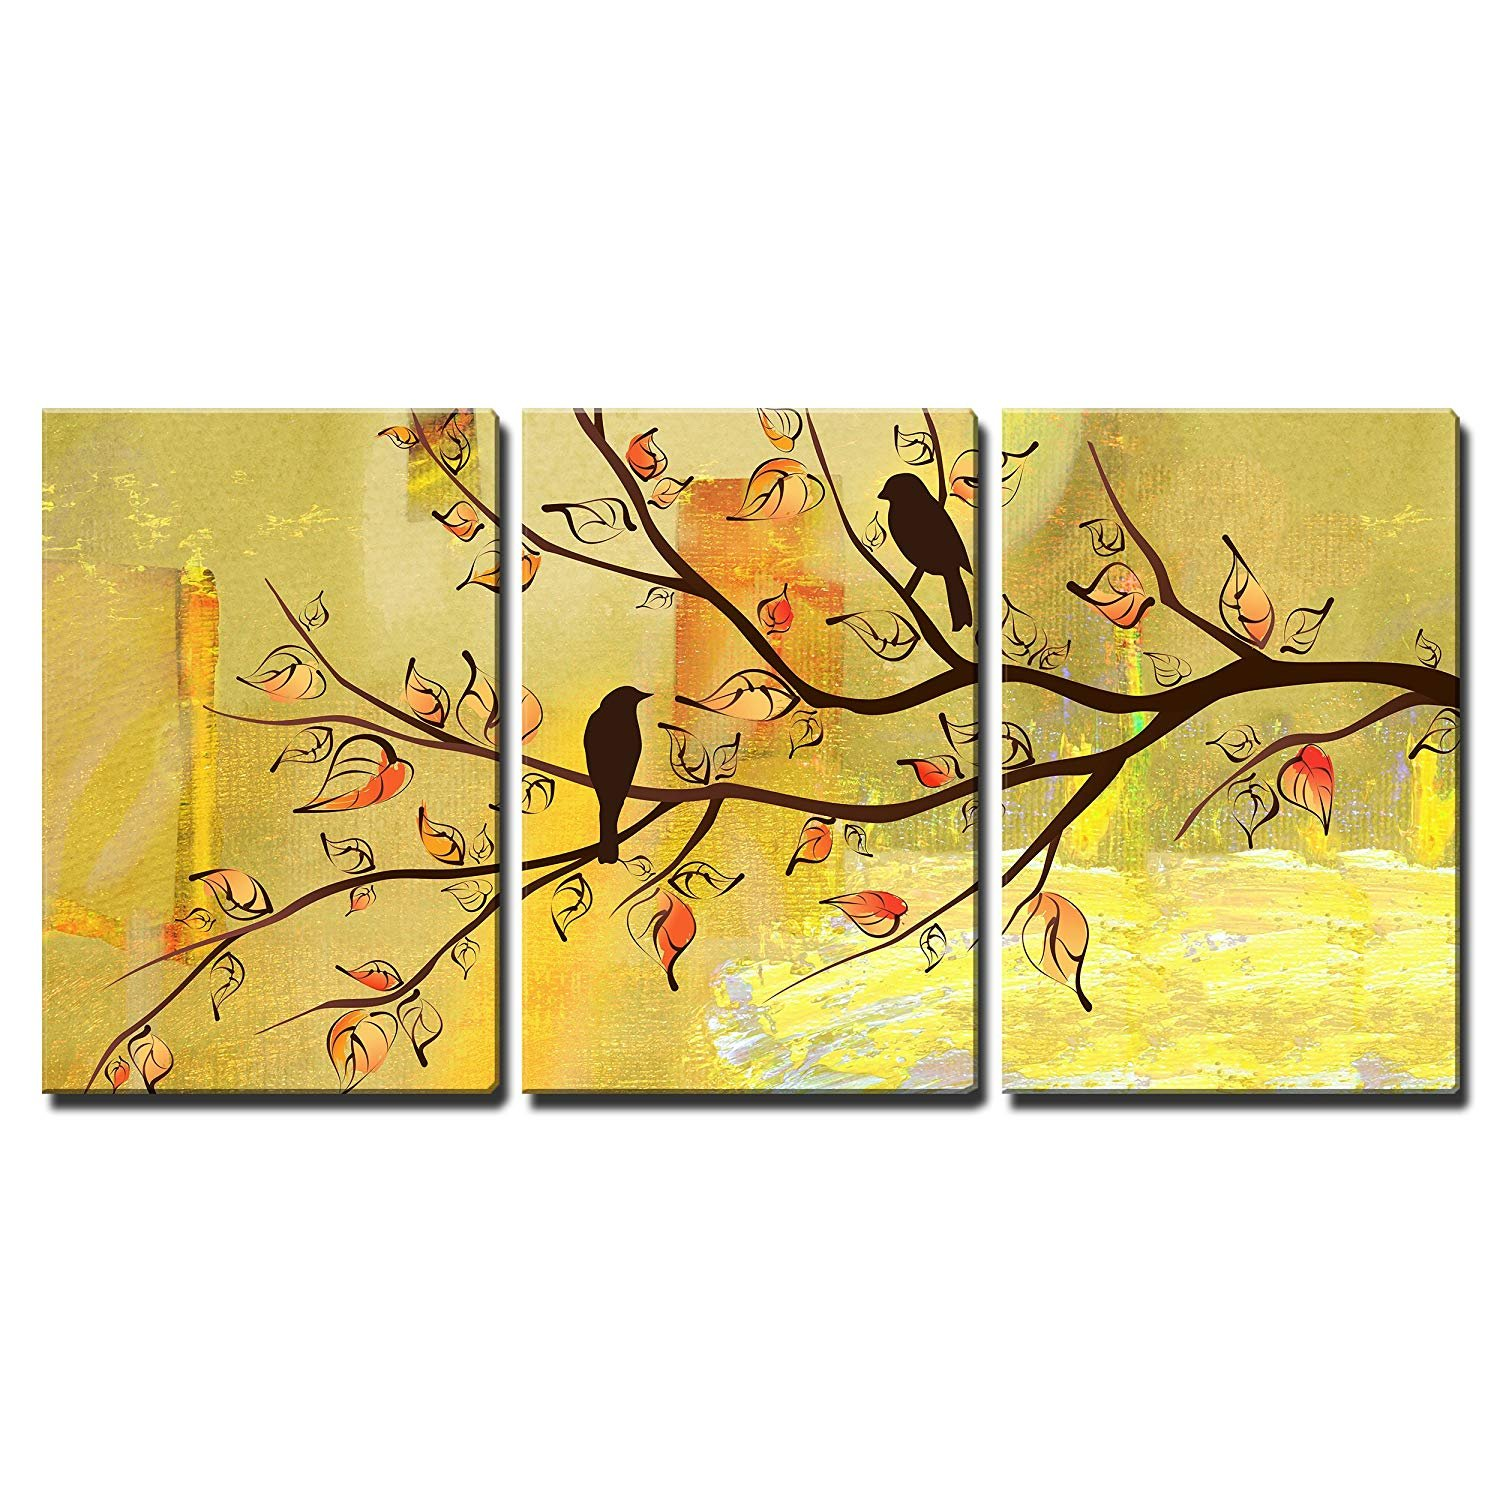 b320e44fd59 wall26 - 3 Piece Canvas Wall Art - Two Birds on Tree Branches on Vintage  Yellow